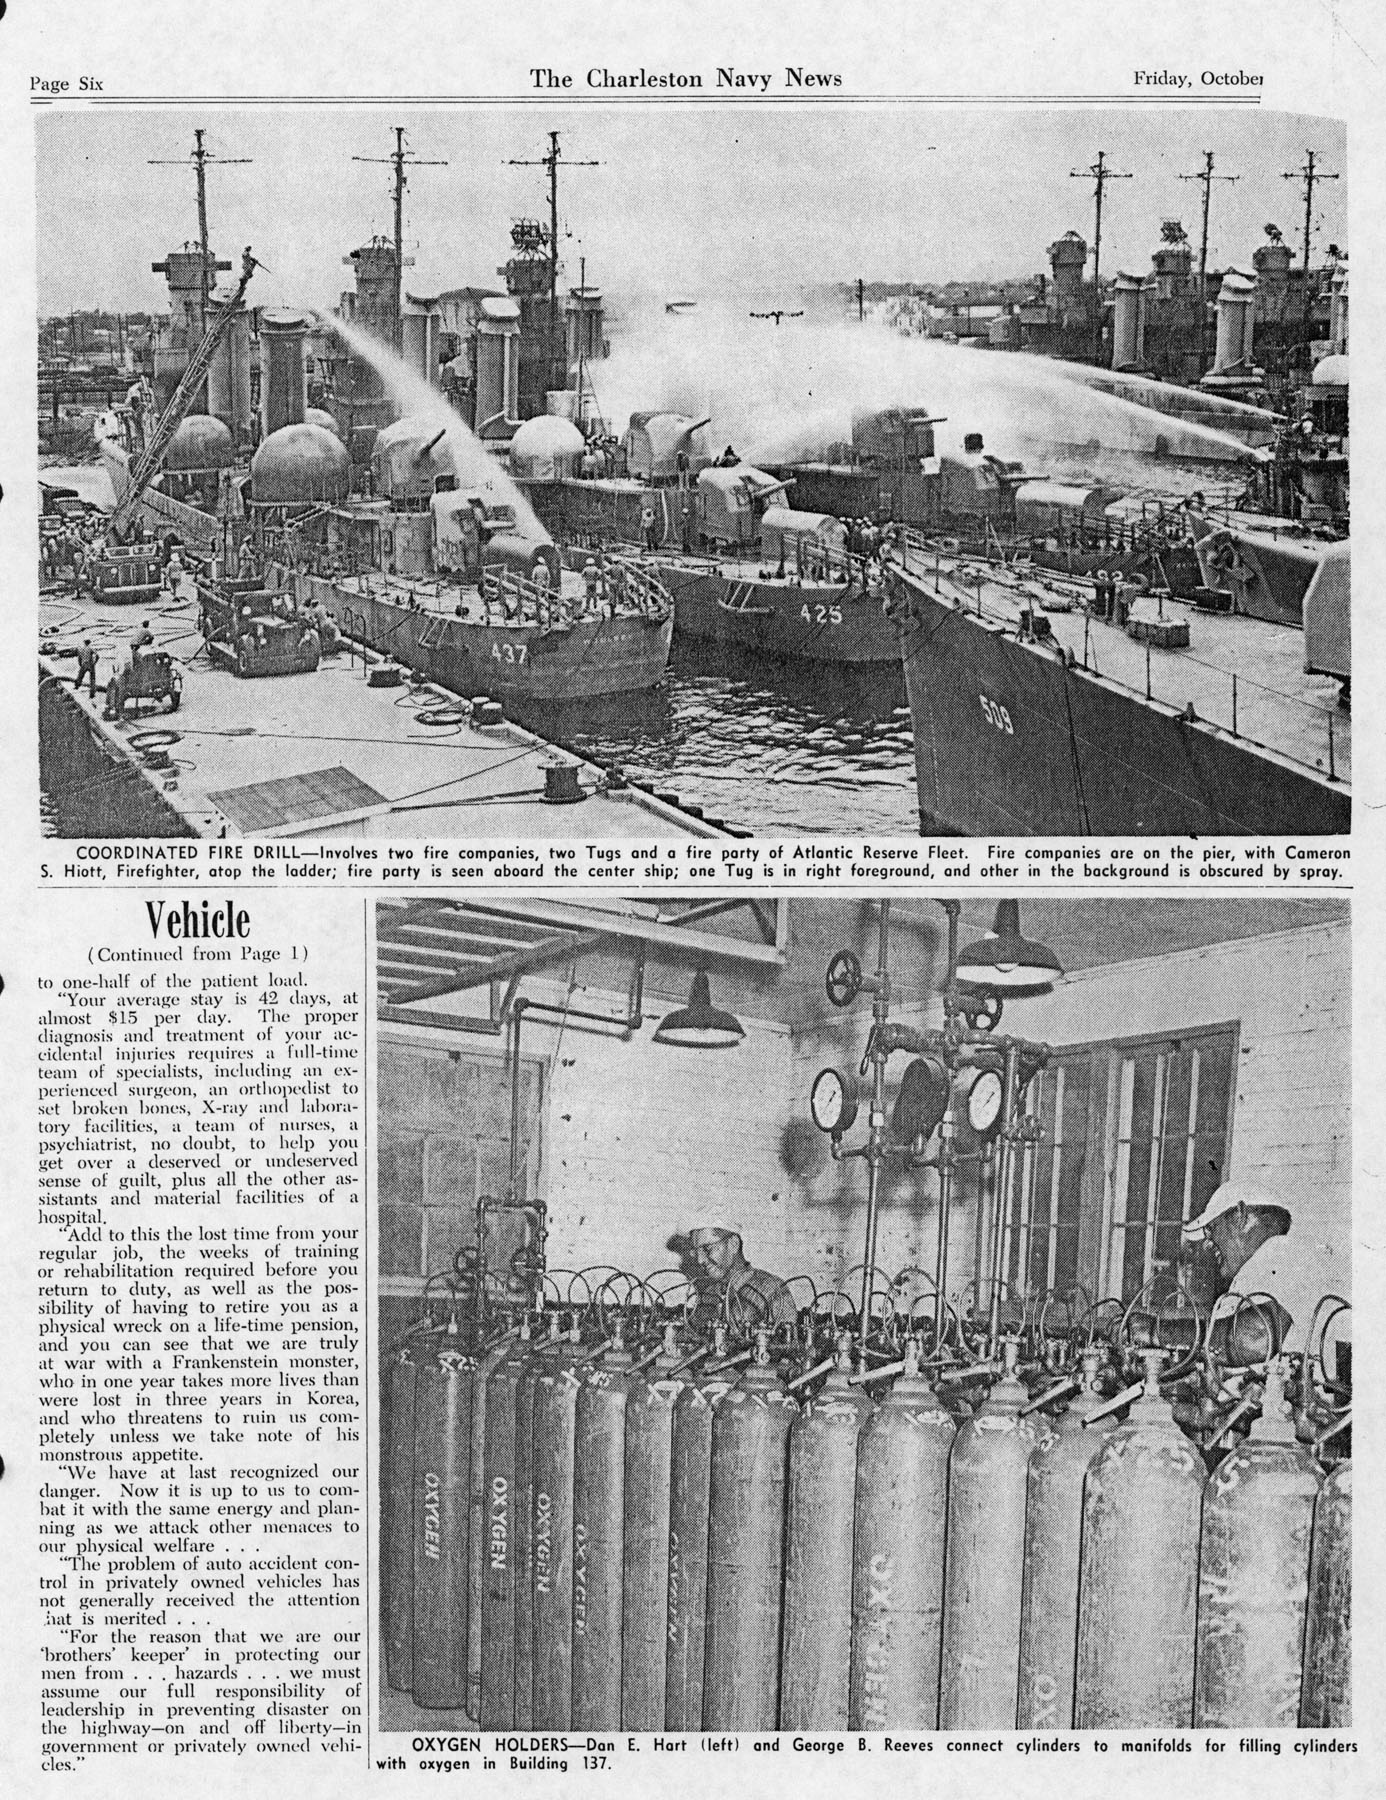 The Charleston Navy News, Volume 12, Edition 7, page vi